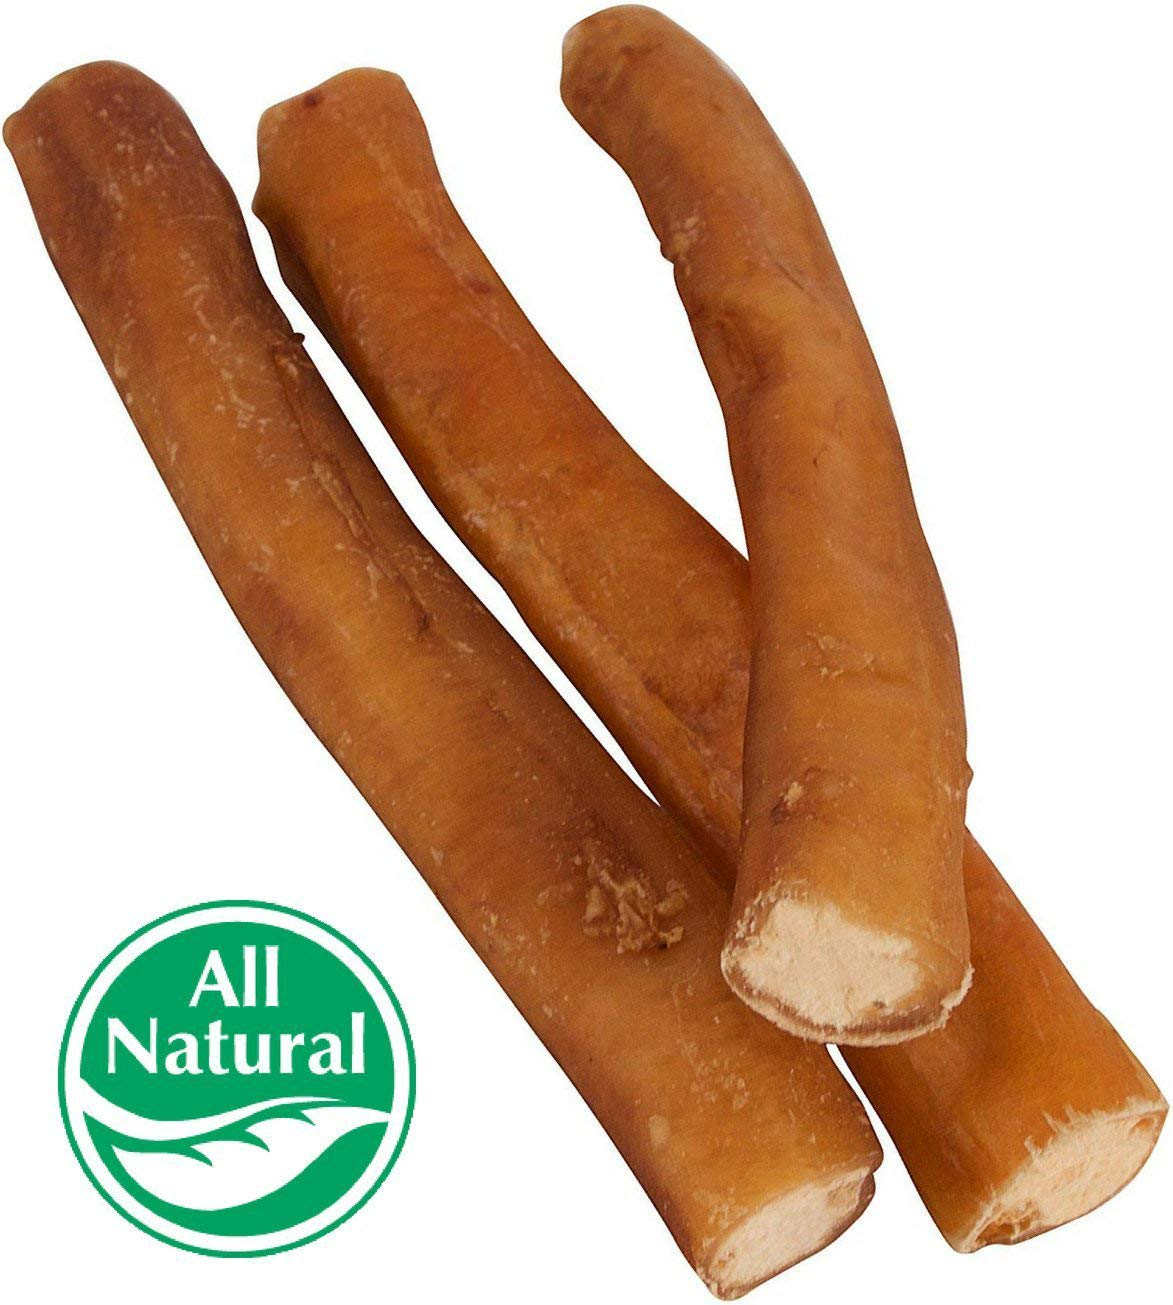 7'' Straight Bully Sticks for Dogs [X-LARGE THICKNESS] (50 Pack) All Natural & Odorless Bully Bones | Long Lasting Dog Chew Dental Treats | Best Thick Bullie Sticks for Dogs or Puppies | Grass-Fed Be